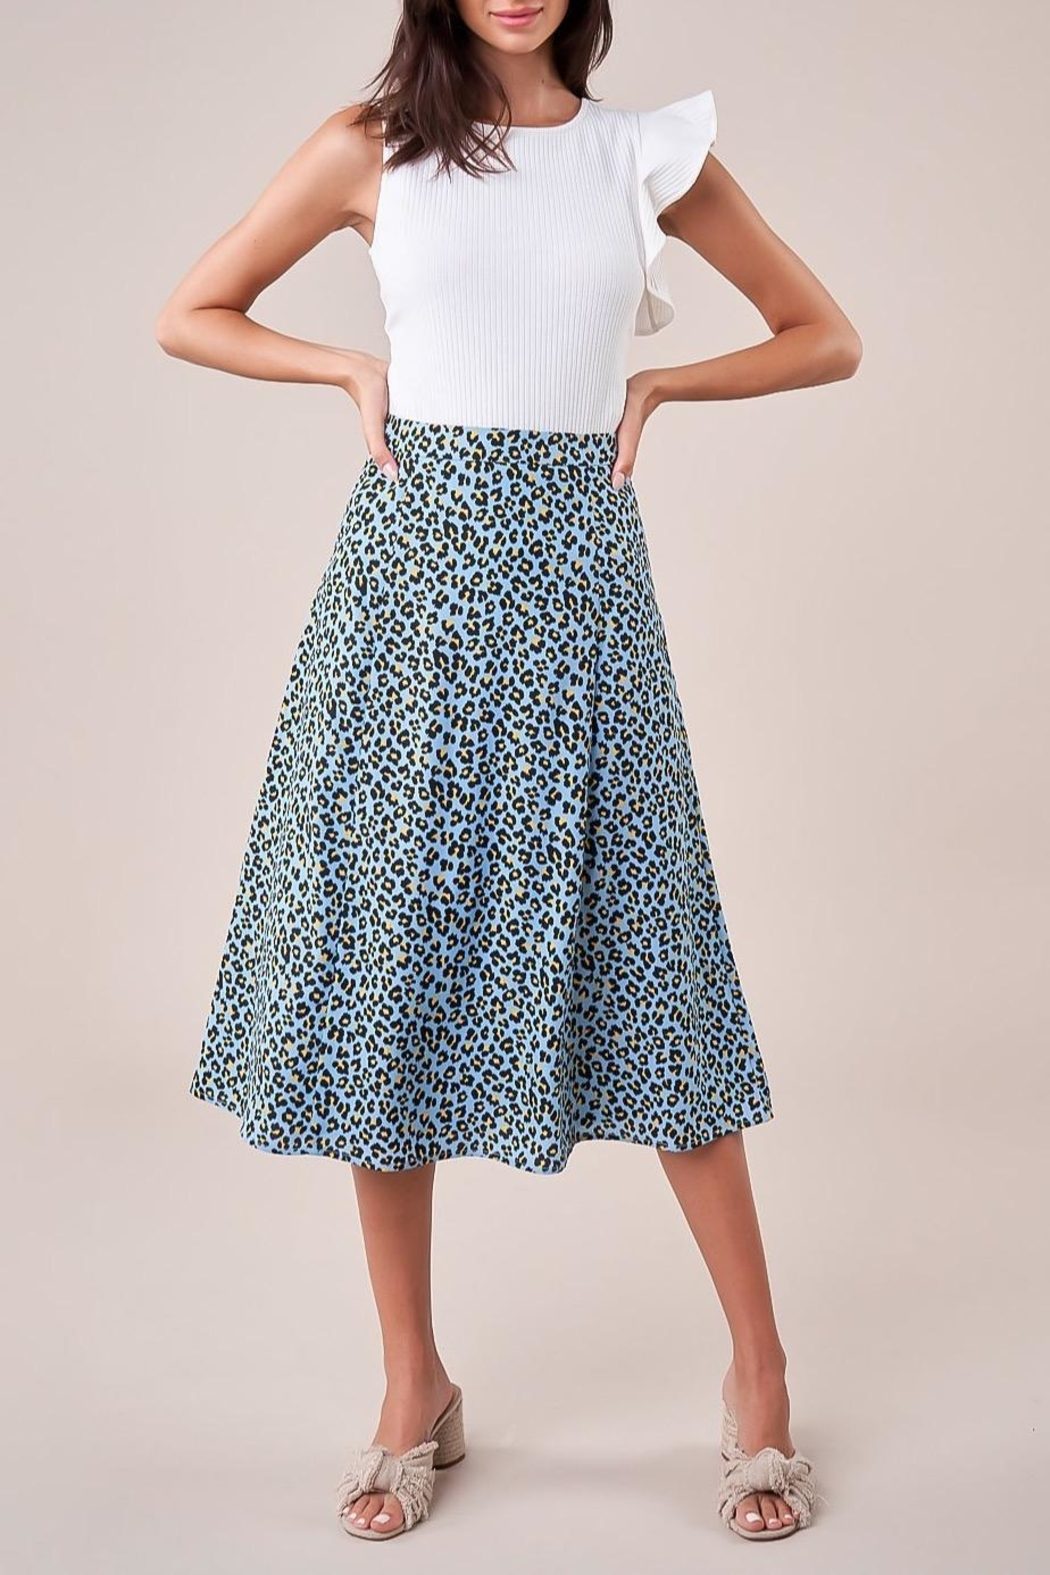 Sugarlips Leopard Midi Skirt - Front Cropped Image